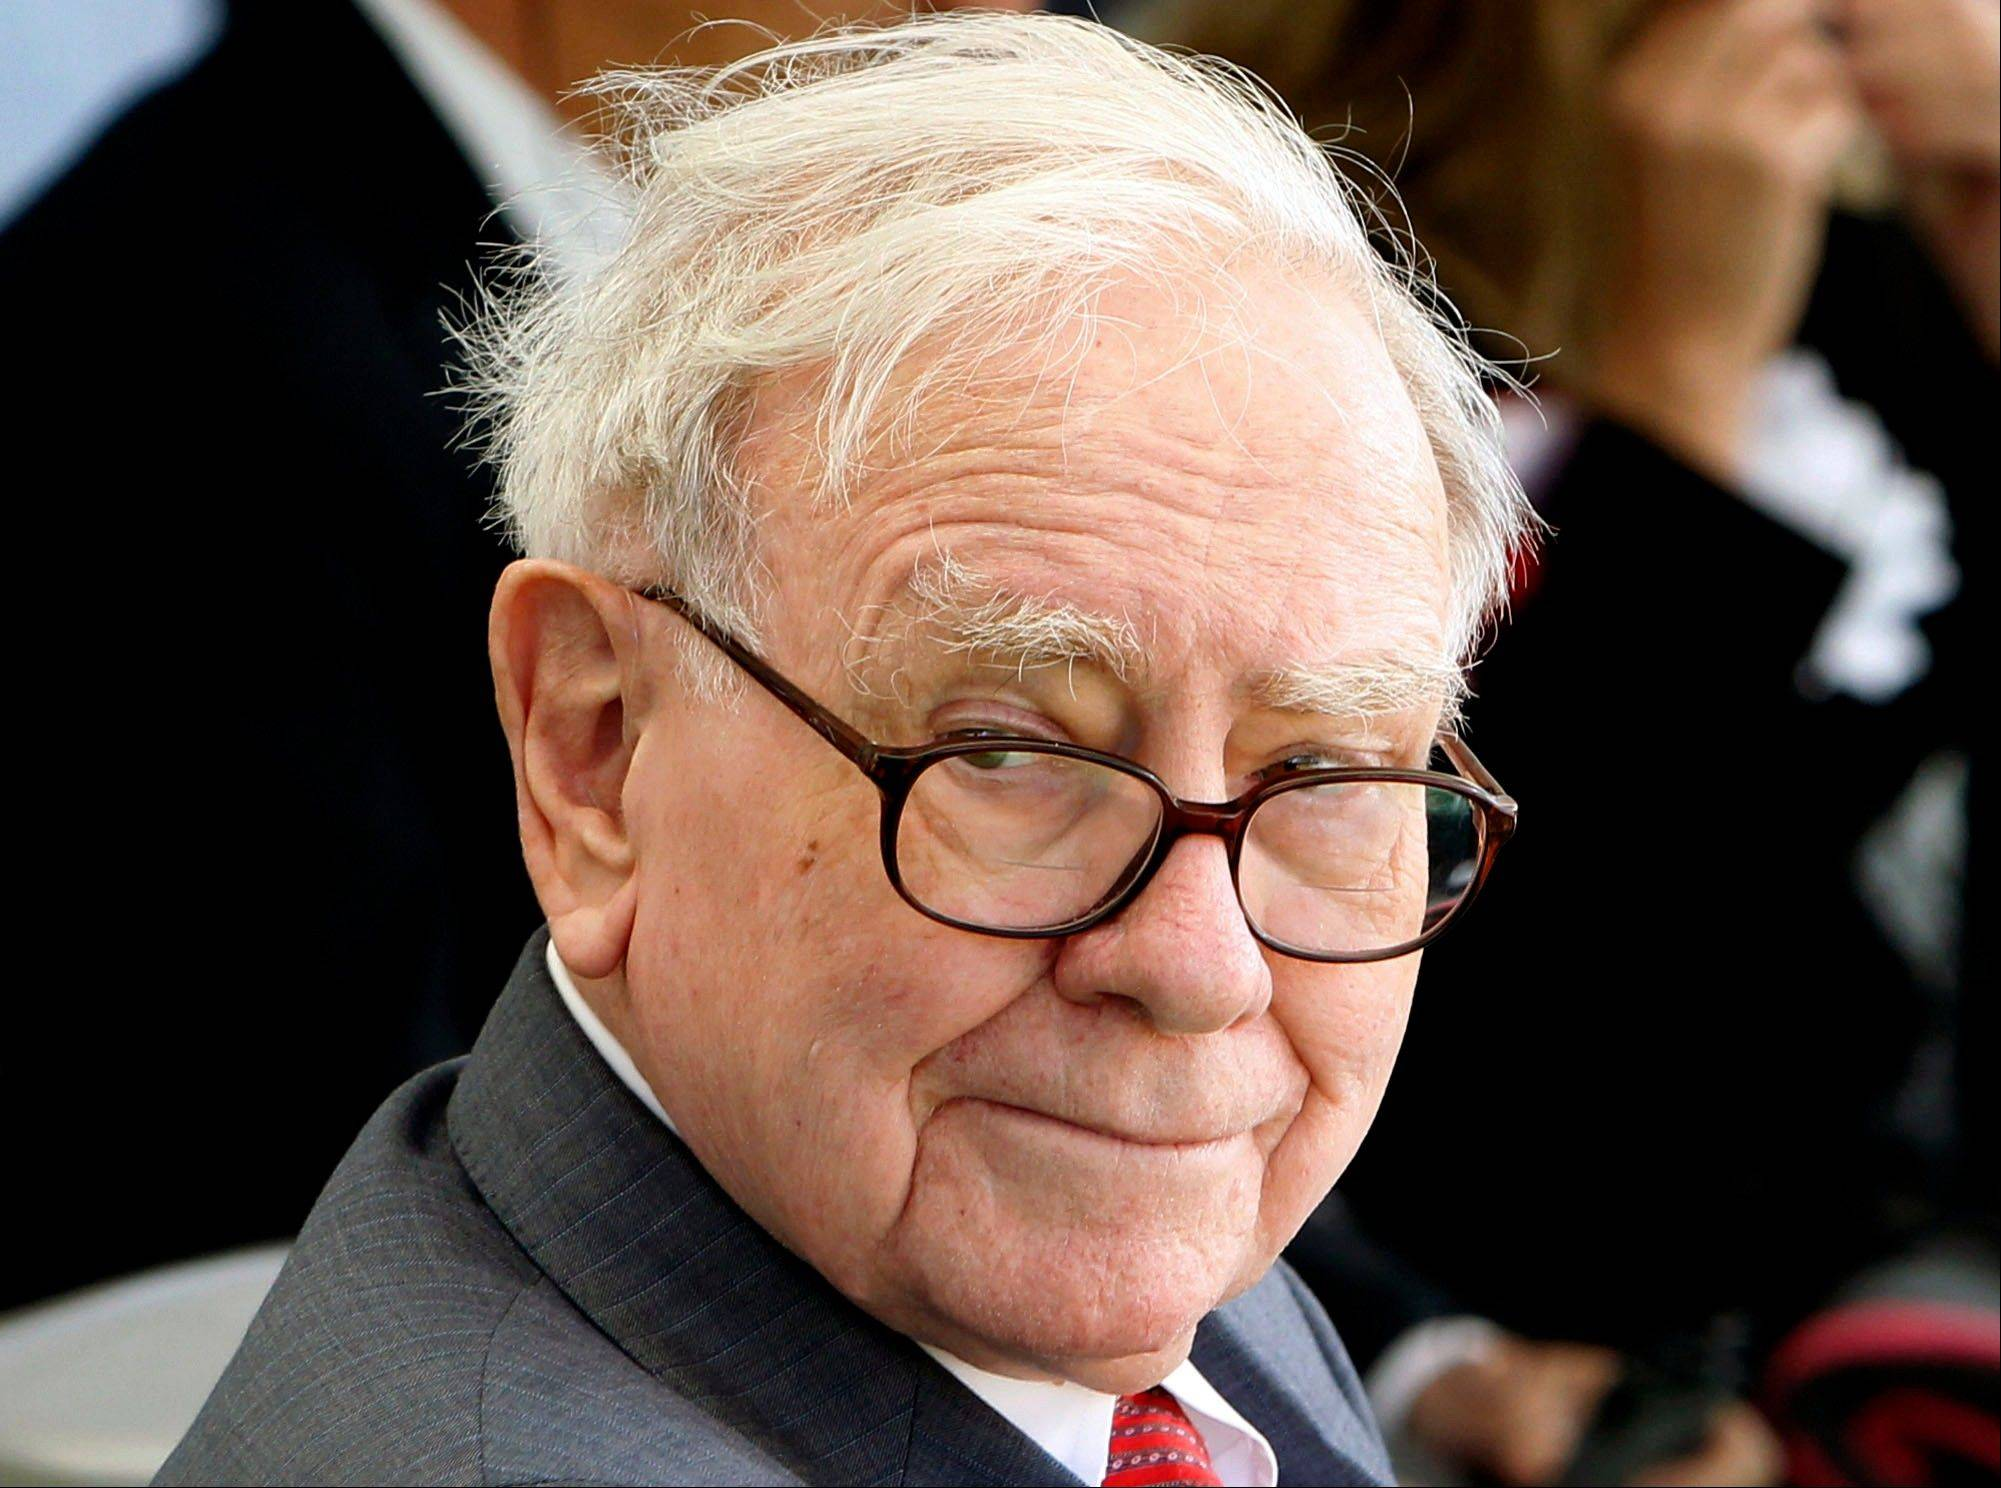 Billionaire Warren Buffett said Wednesday it would be idiocy for the nation�s leaders to allow the United States to default on its bills.